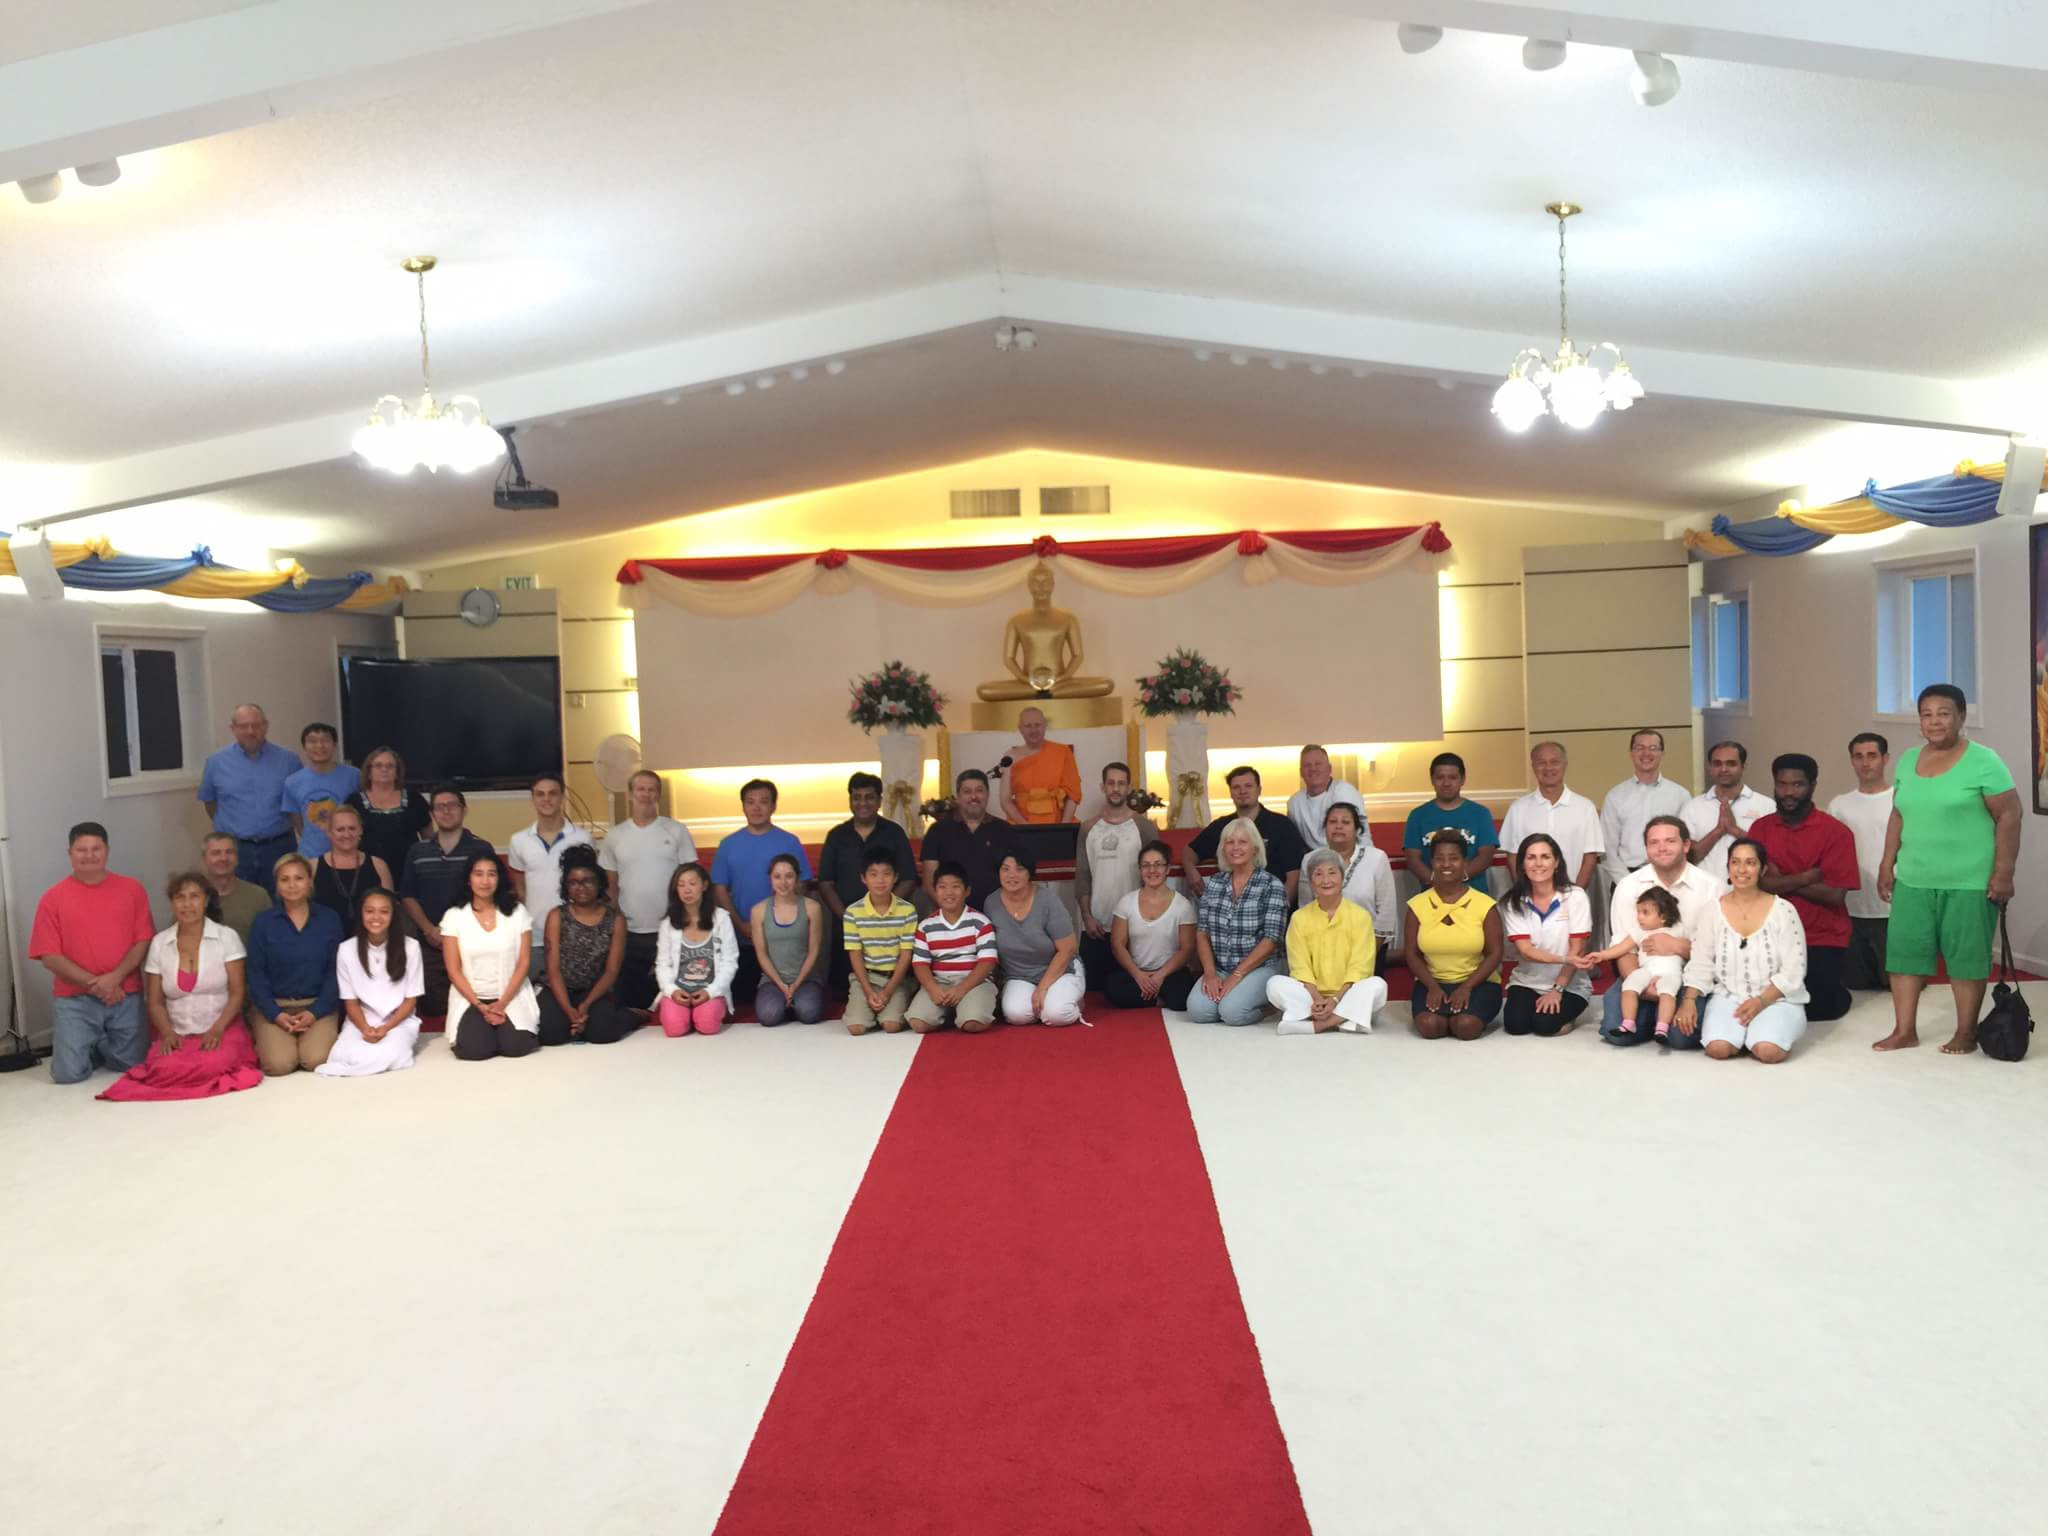 allstate hardwood floors meriden ct of dhammakaya usa for on wednesday july 27th we welcomed venerable nicholas to the georgia meditation center our meditation group began meeting in 2007 with the goal of one day